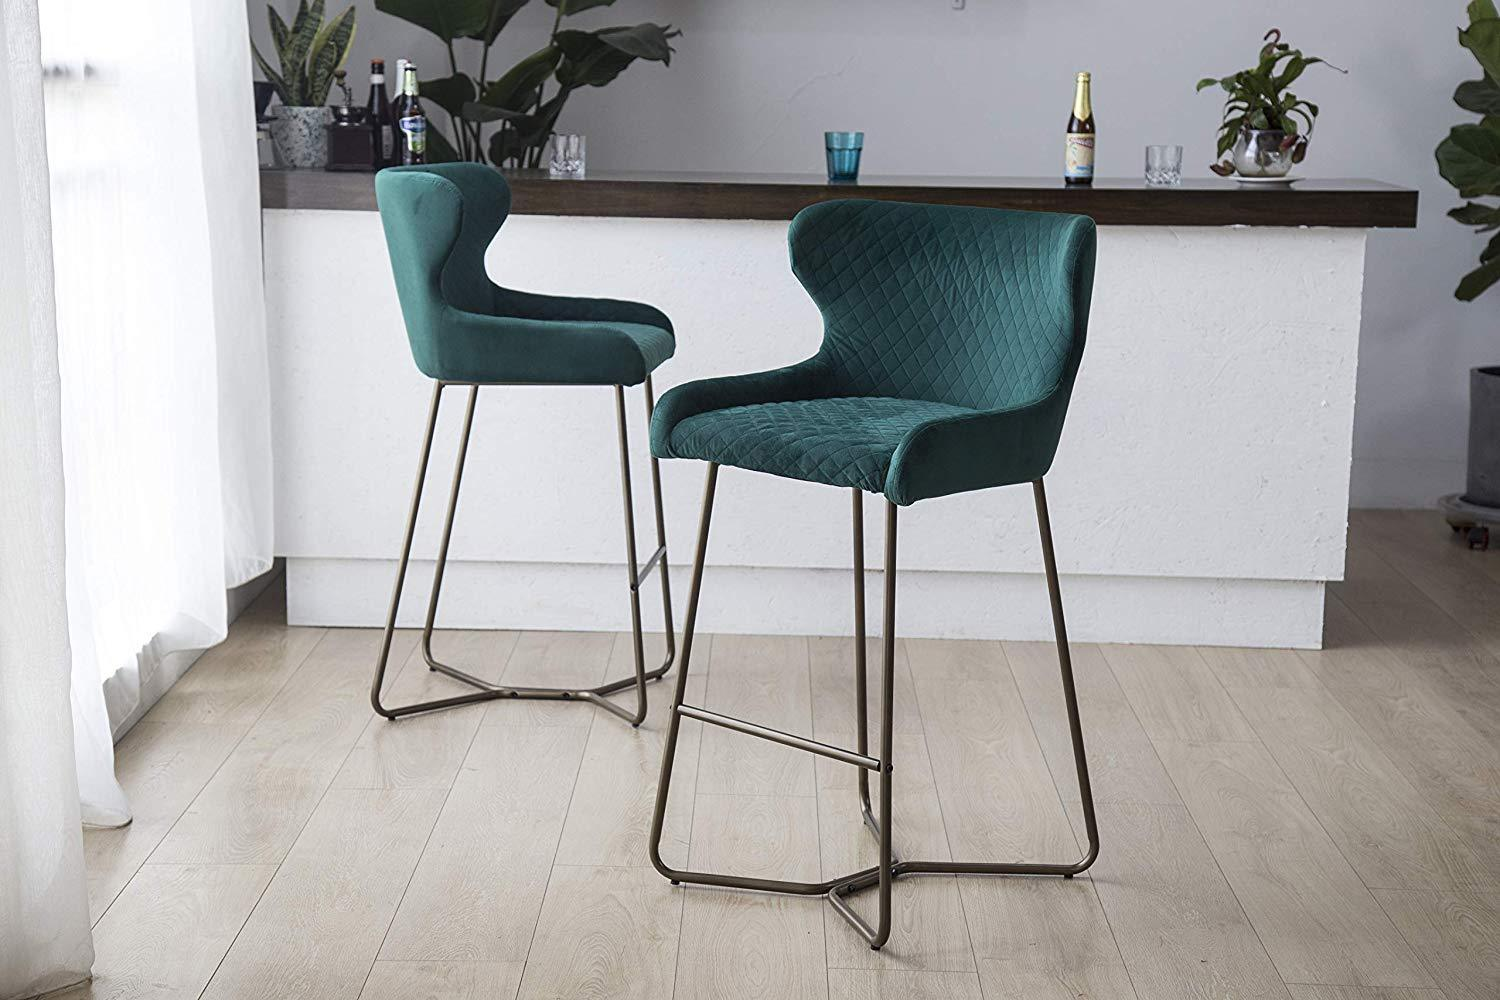 Emerald Green Luxe Azuki Luxury Velvet Diamond Bar Chair Stool Brass Bronze Leg 65 cm - Pebble & Leaf Homefurniture